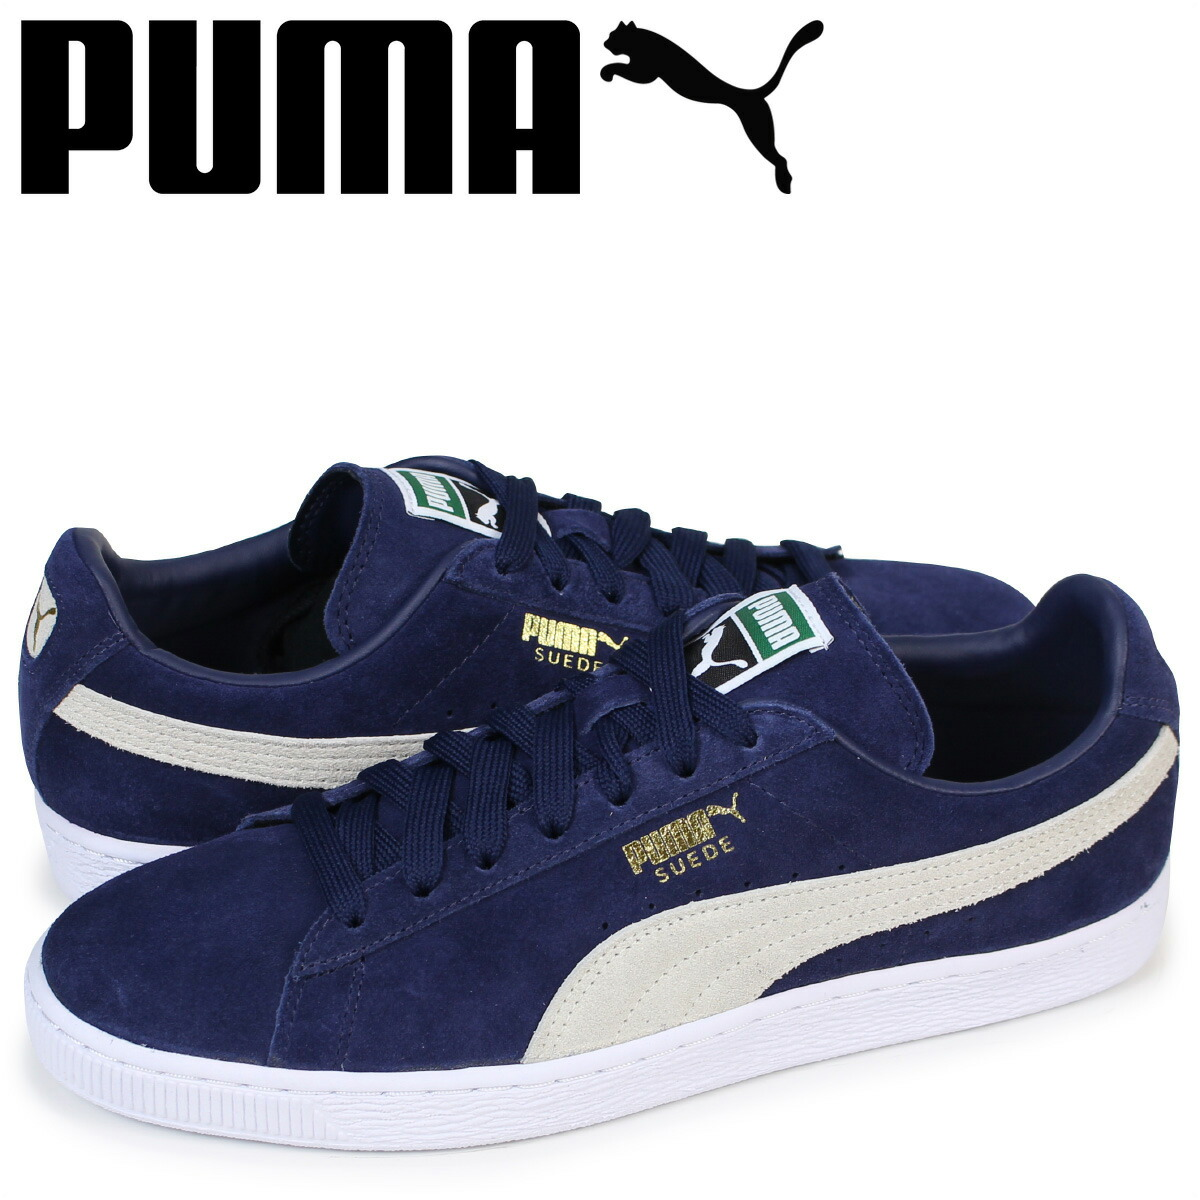 new style aaa9f 084a8 Puma PUMA suede classical music sneakers SUEDE CLASSIC + 356,568-51 men's  navy